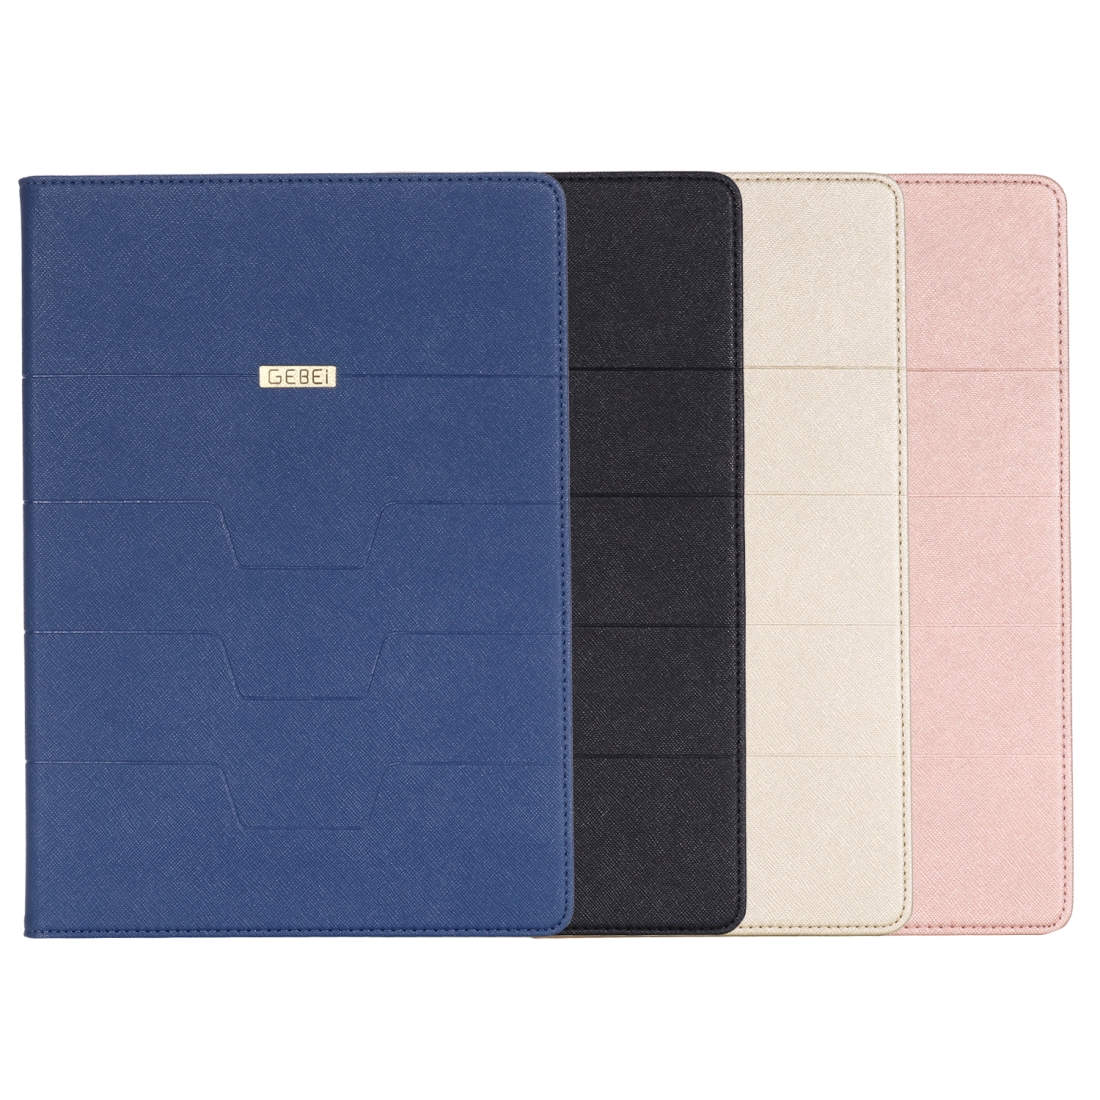 PU/Leather iPad Air 3 Case (10.5 Inch) with Sleeves (Rose Gold)